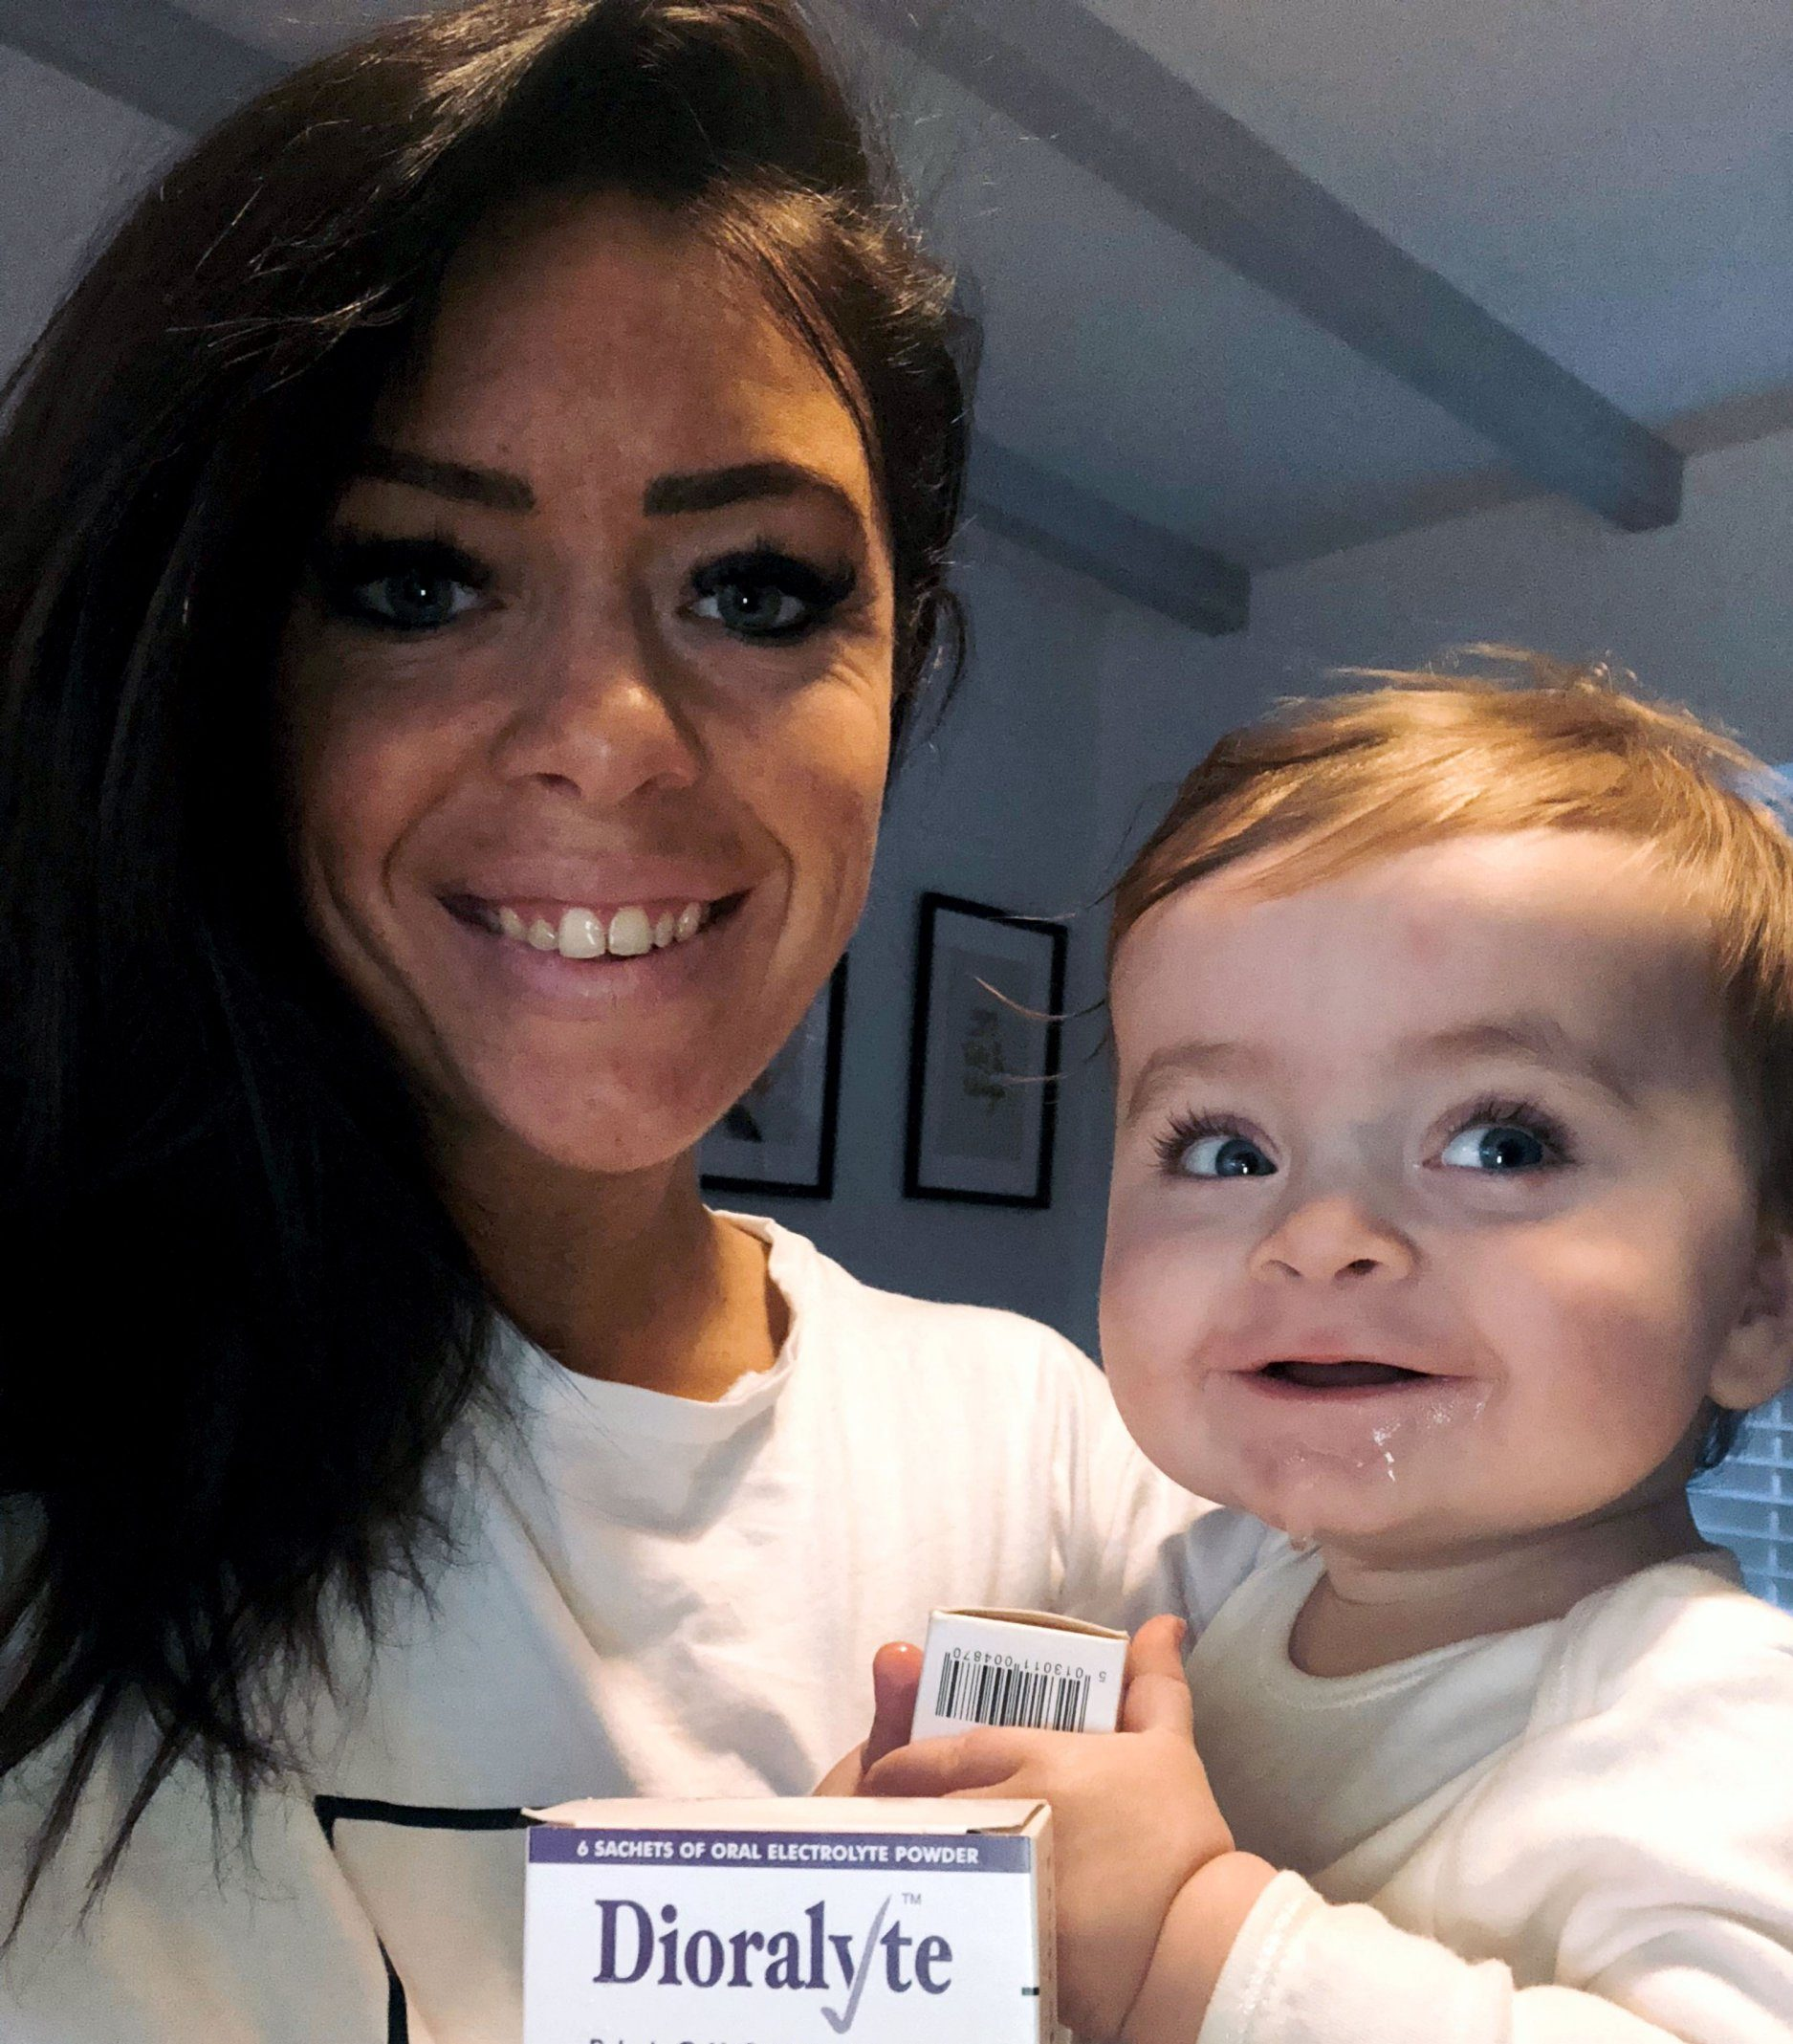 PIC FROM Caters News - (PICTURED: Vincent with mum Samantha Marwood,31) - A shocked mum has issued a warning after her tot nearly did when a simple throwing up bug caused near-fatal dehydration which a 63p remedy could have prevented.Samantha Marwood,31, was nursing nine-month-old son Vincent last Saturday (Sat 19) when the tot began to vomit every 30 minutes for more than 10 hours after picking up a stomach bug.SEE CATERS COPY